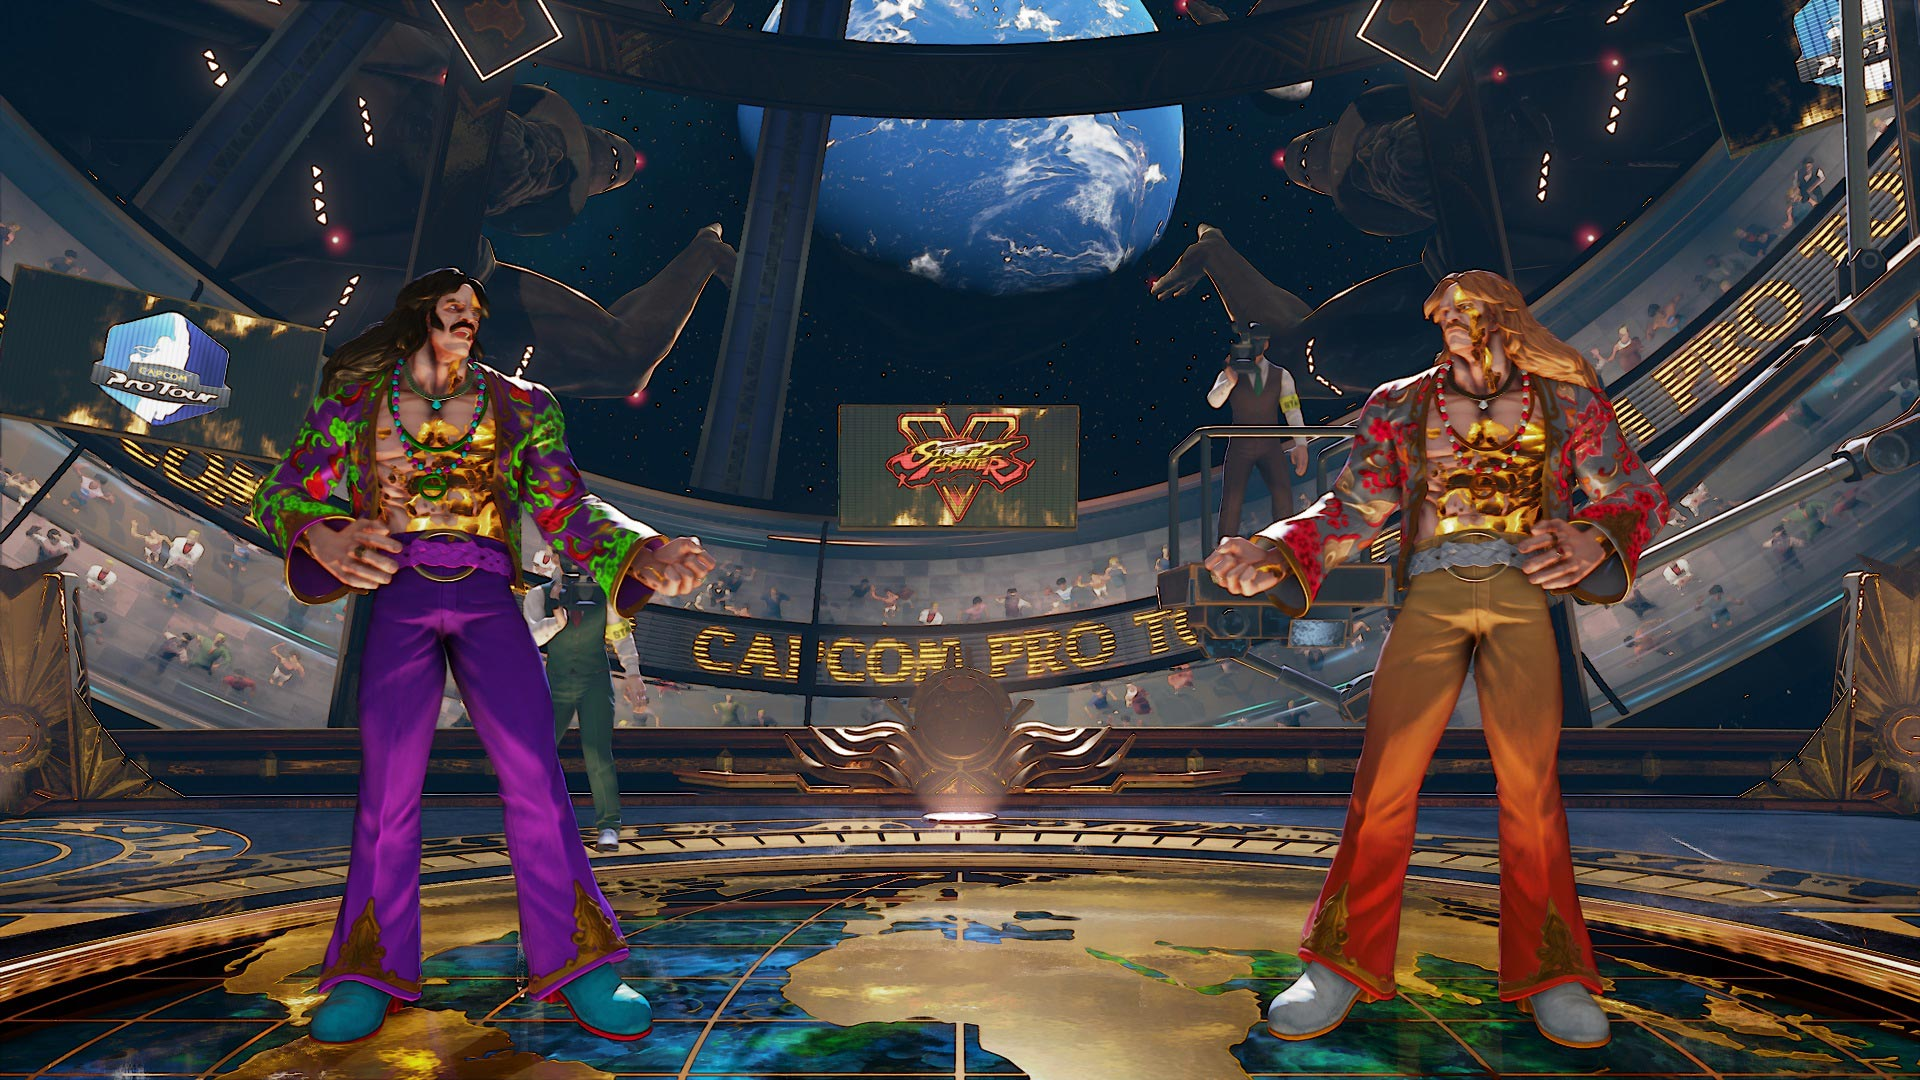 G CPT DLC costume colors and Easter egg 3 out of 5 image gallery